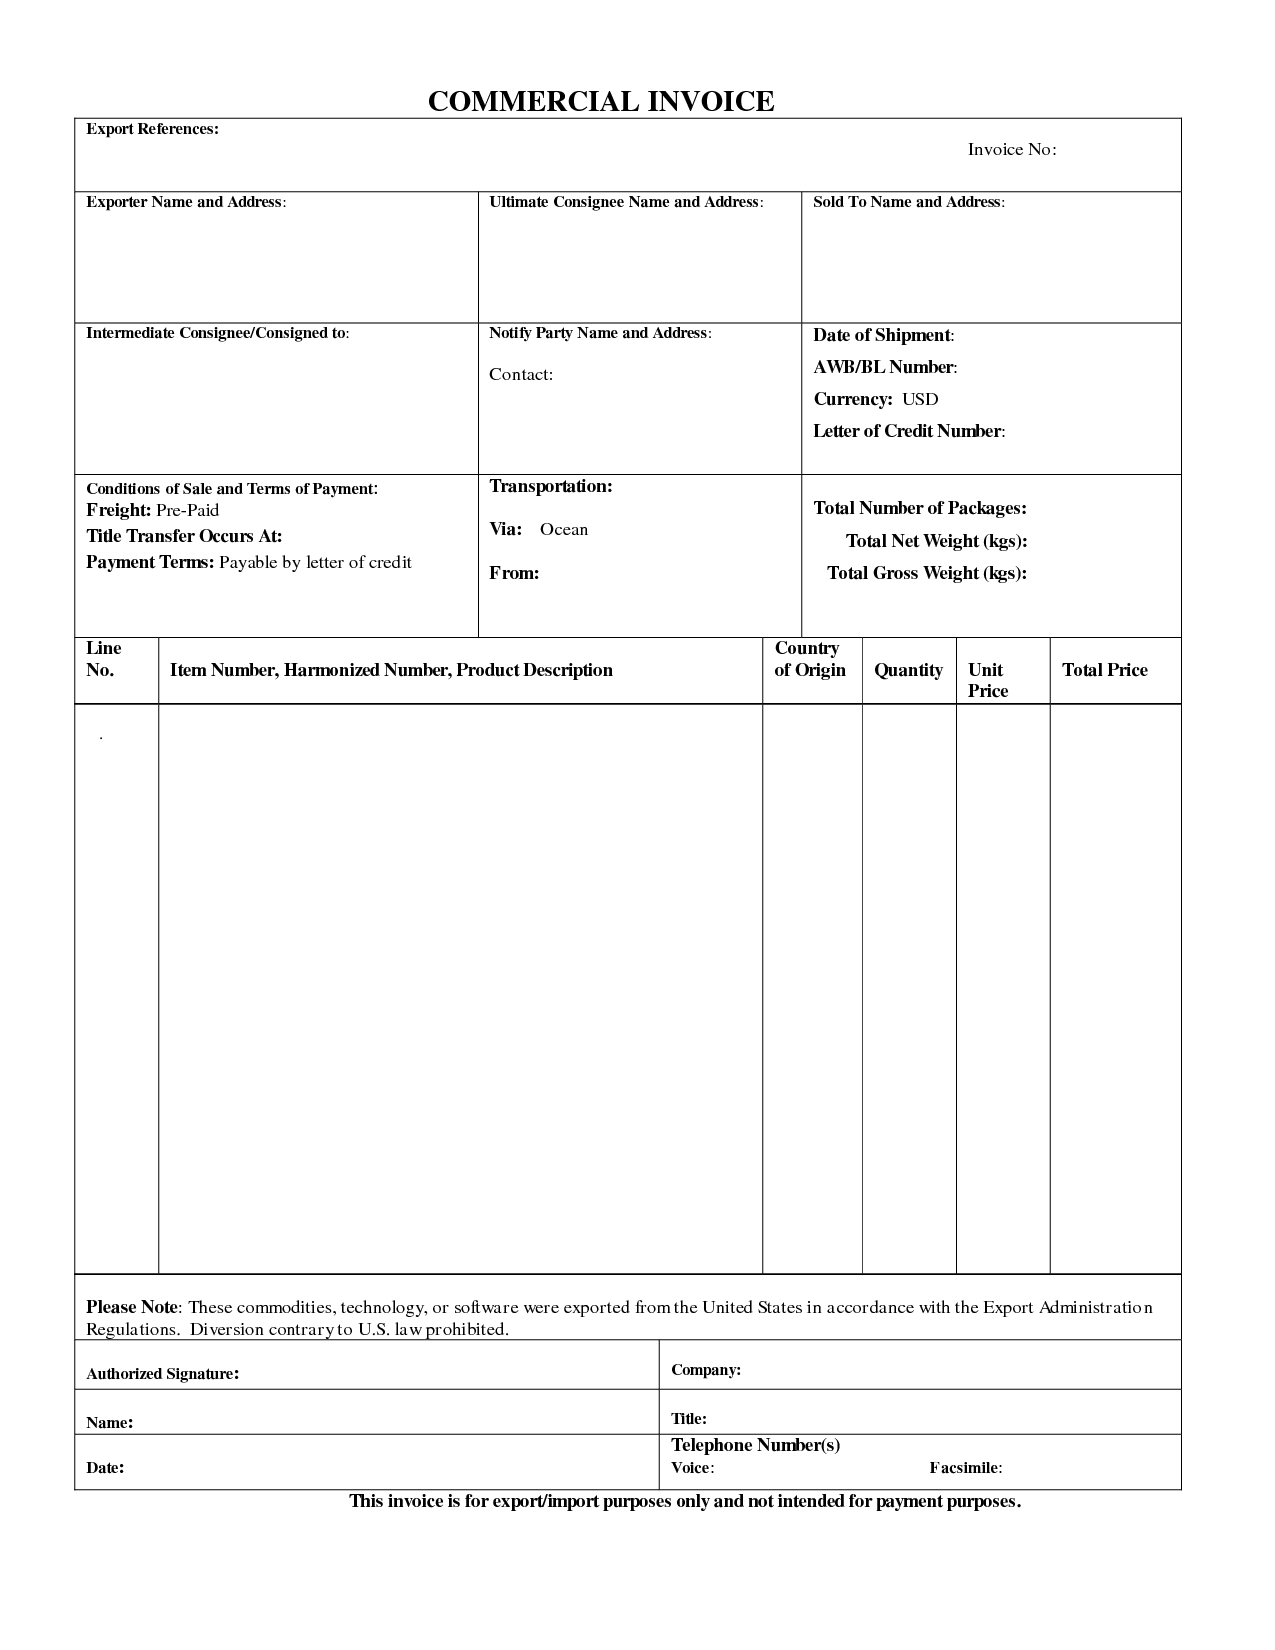 commercial invoice for export export invoice template 11 commercial invoice templates download 1275 X 1650